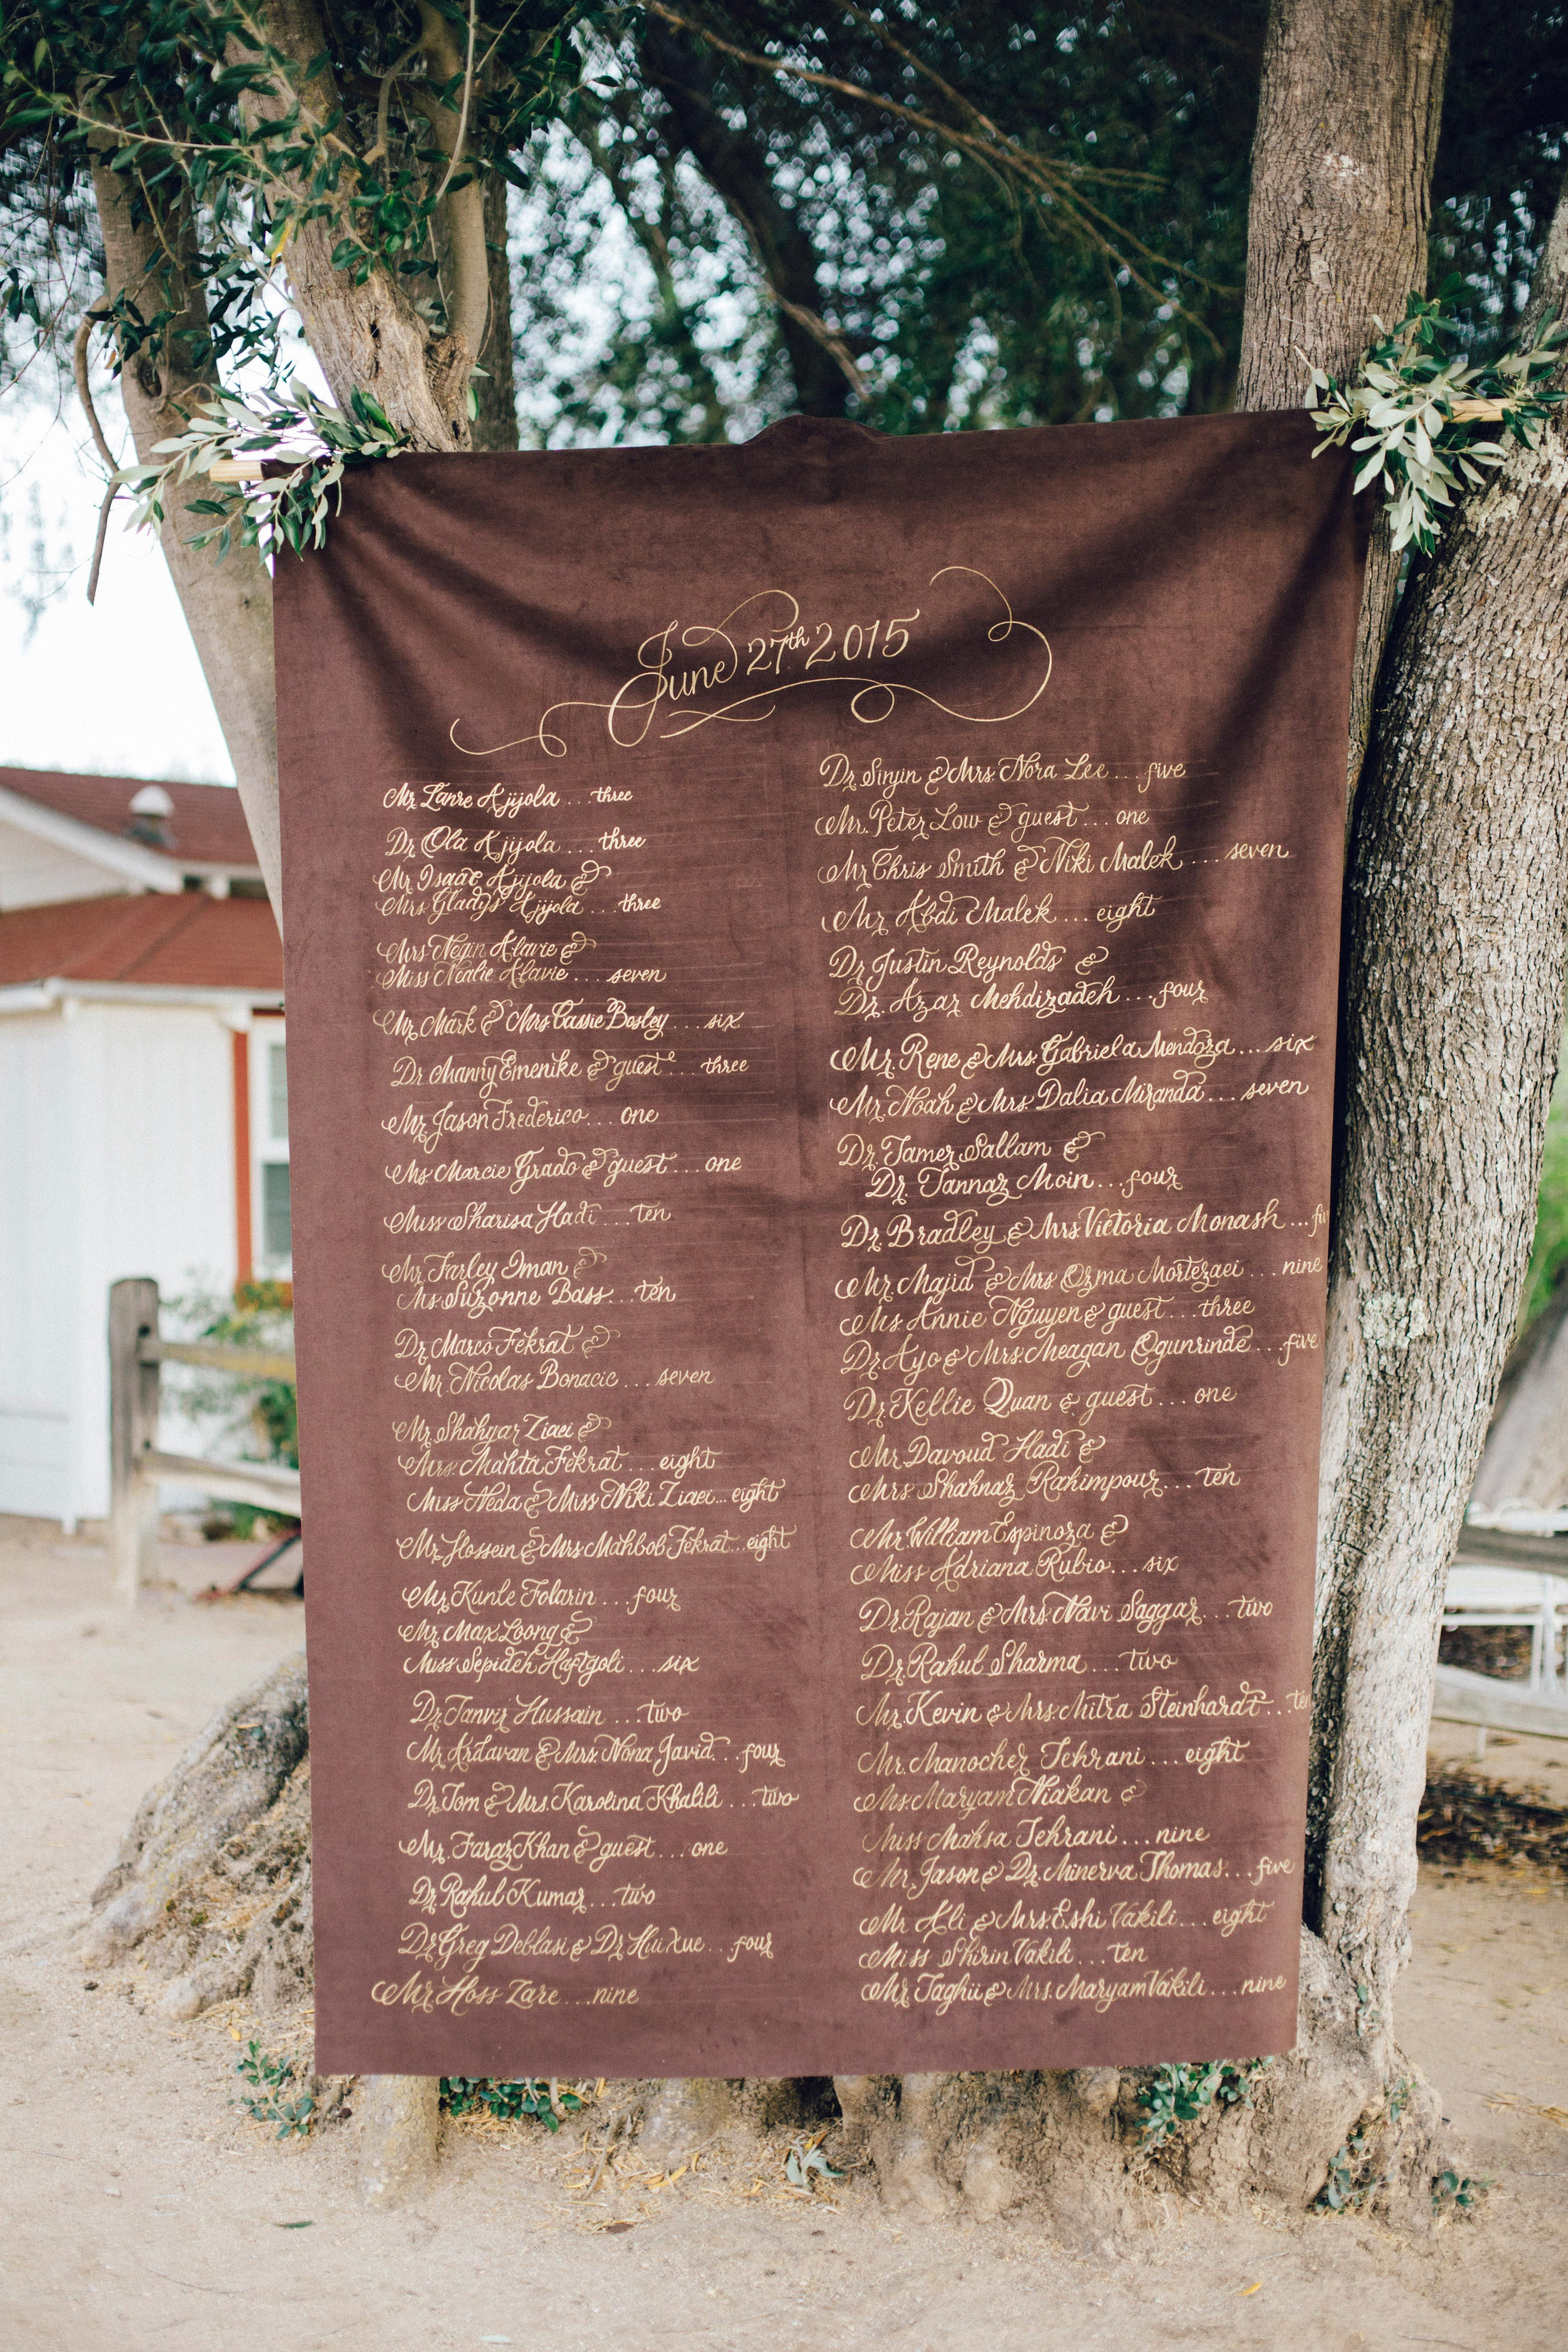 25 Unique Wedding Seating Charts To Guide Guests To Their Tables Seating Chart Wedding Wedding Seating Seating Plan Wedding